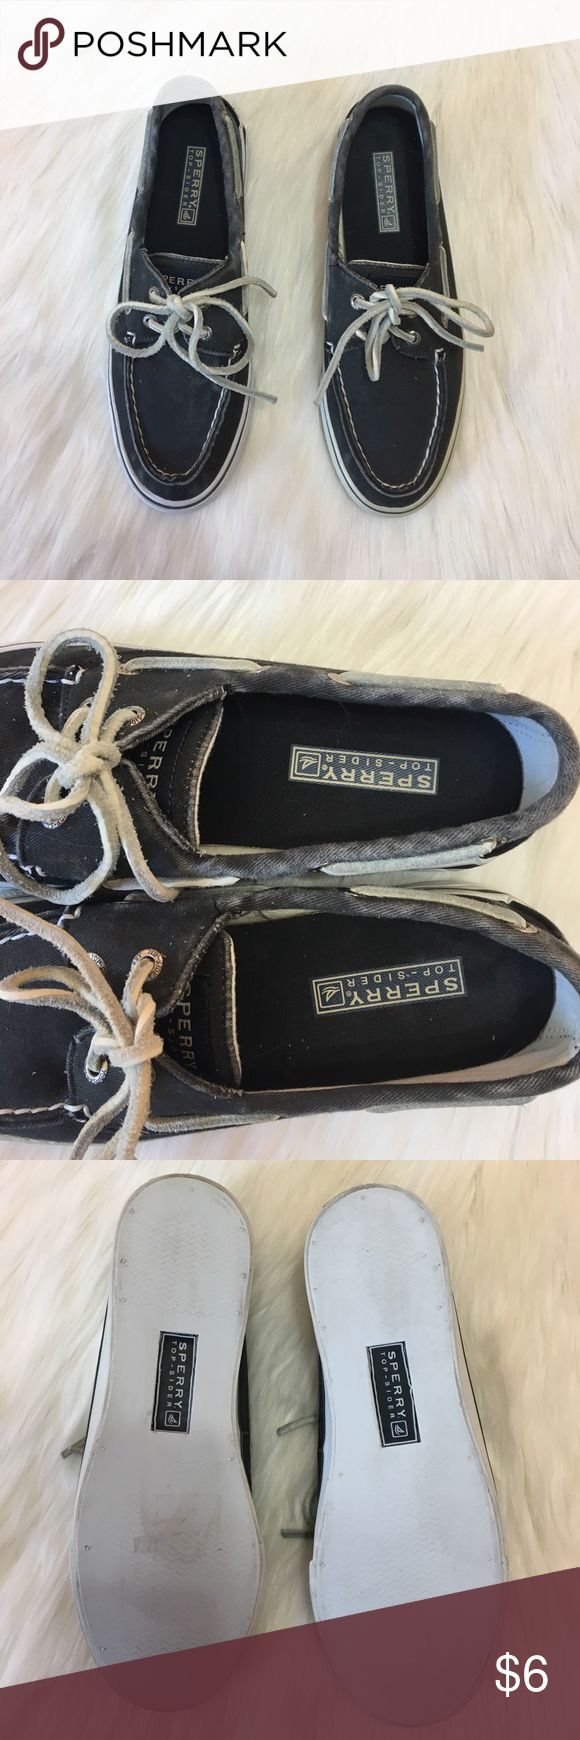 Black Sperrys! Black Sperry Shoes!                                                                    • Size: Women's 6 Medium!                                                      • Happy to answer any ?'s!                                                         • Offers welcome! Sperry Top-Sider Shoes Flats & Loafers